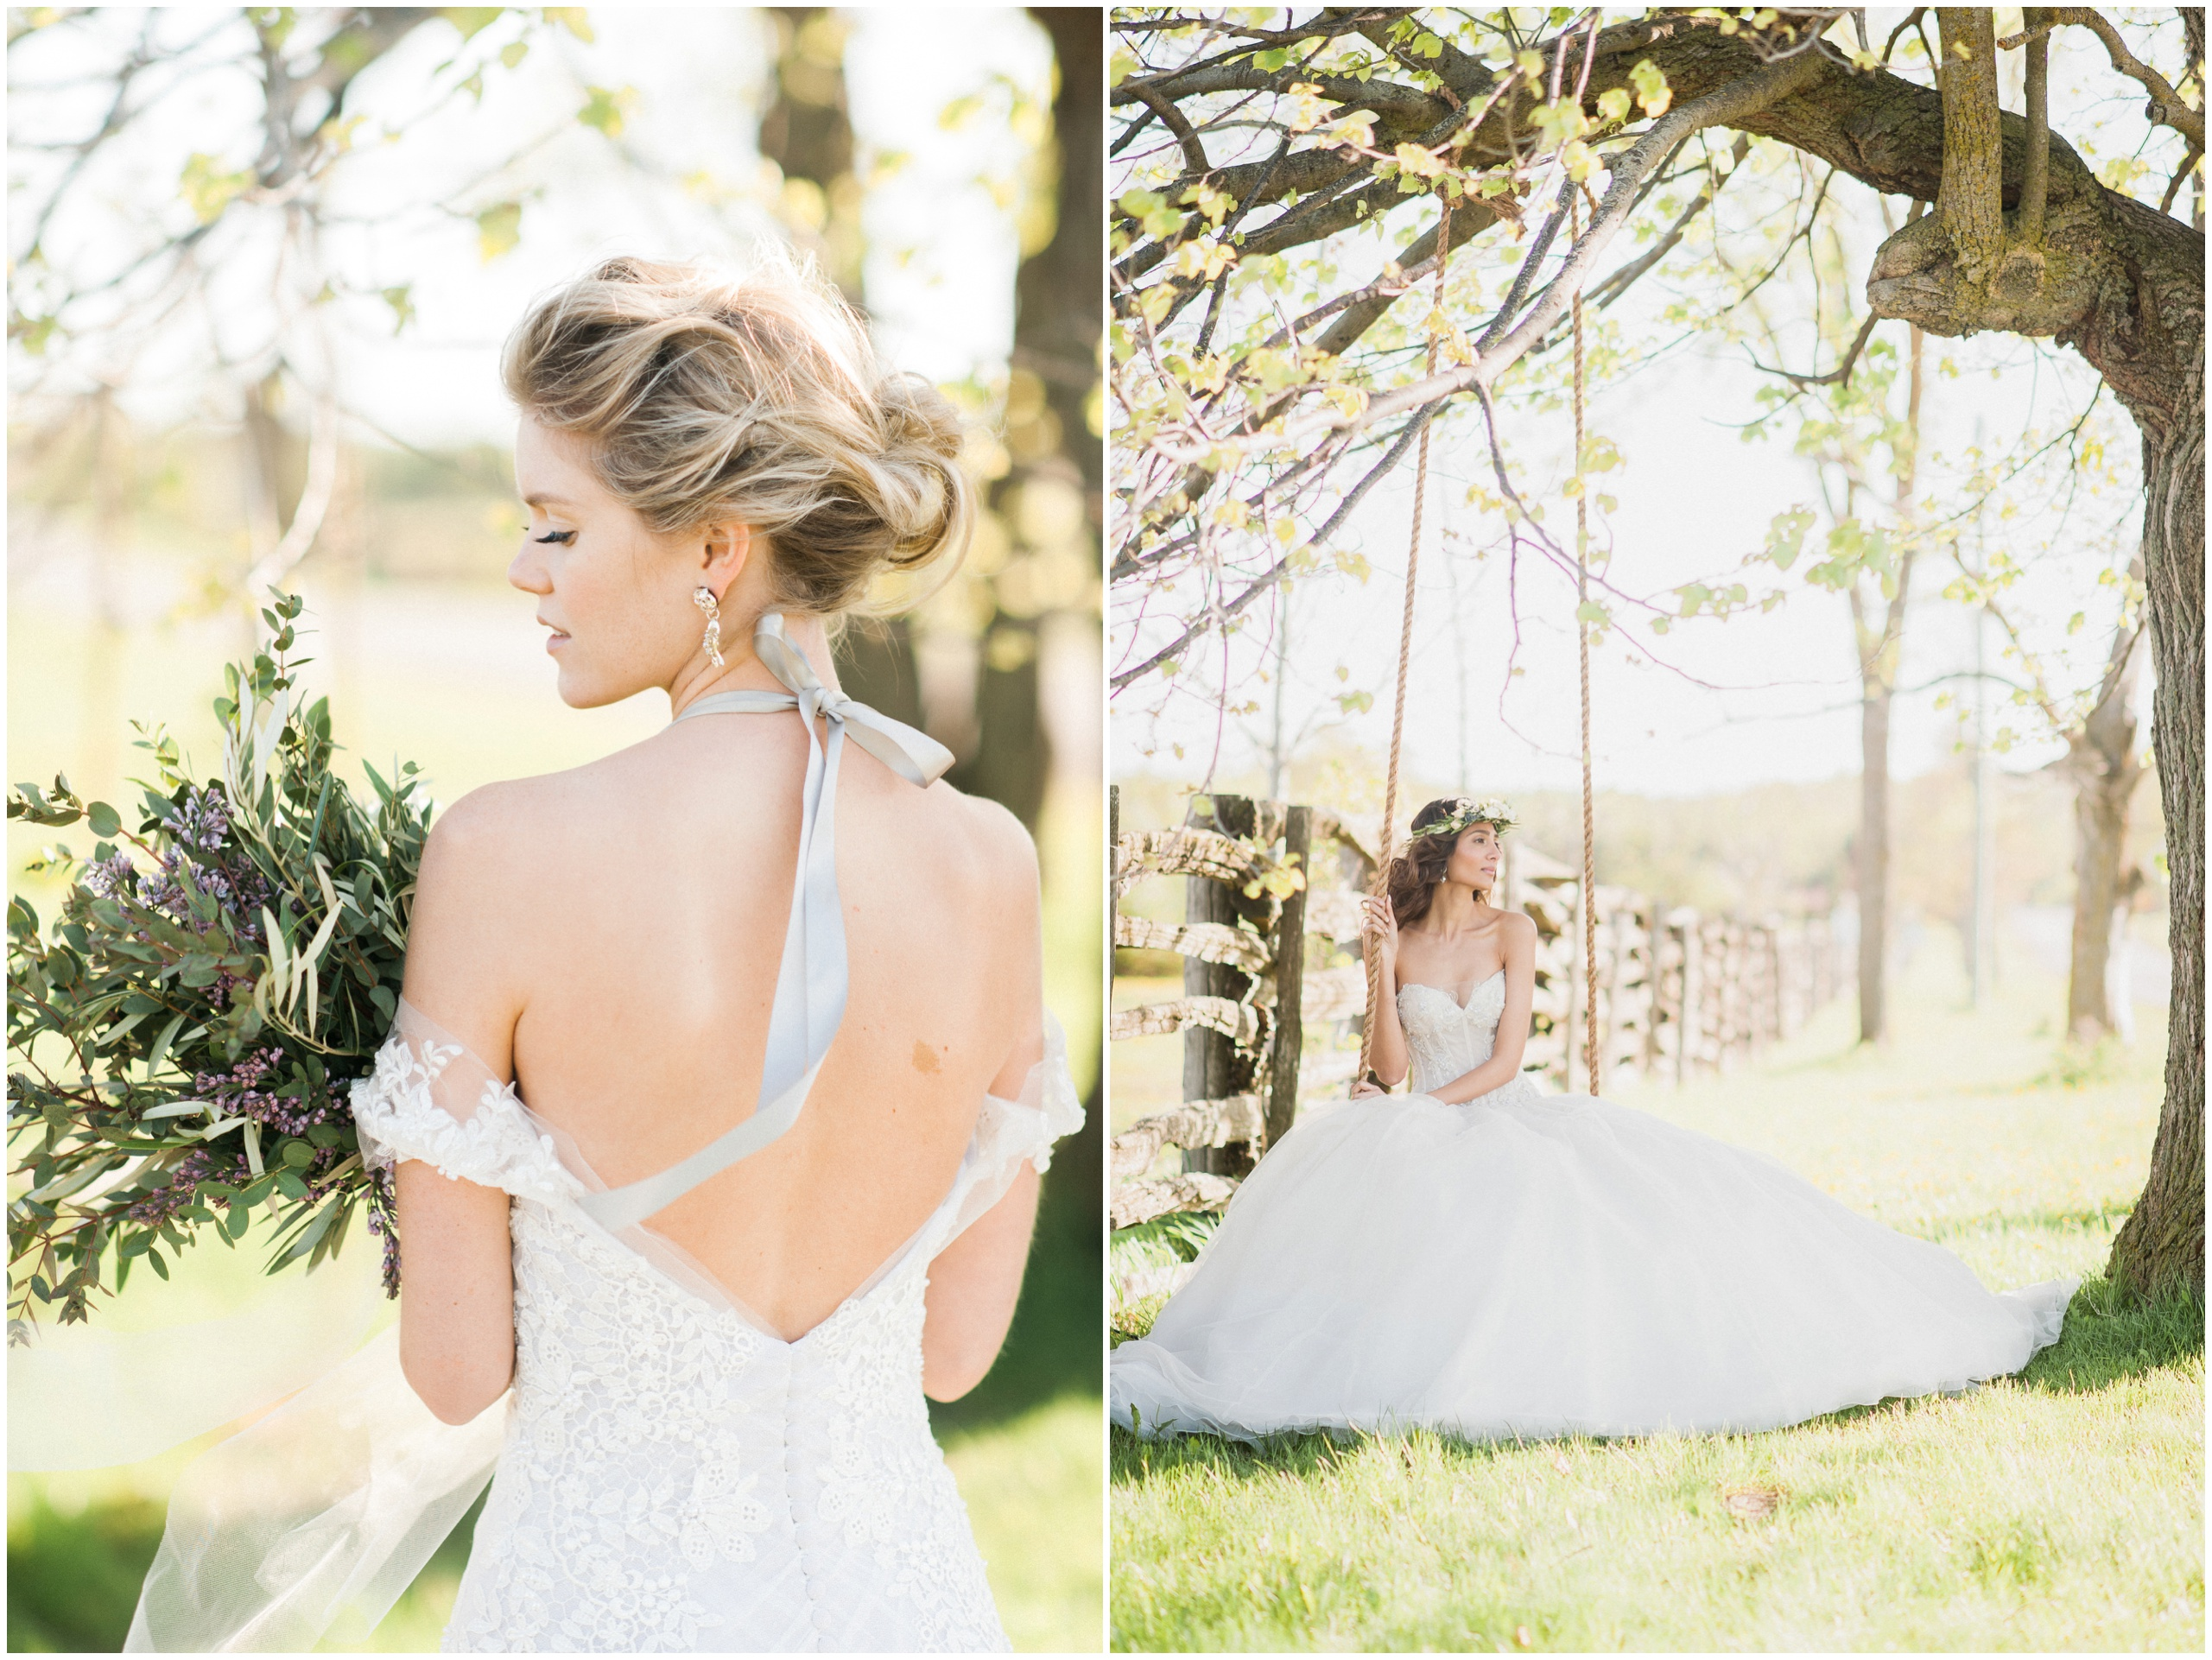 Wedding Inspiration: Bride wearing Hattitude ribbon necklace and Ines Di Santo gown on wooden swing.